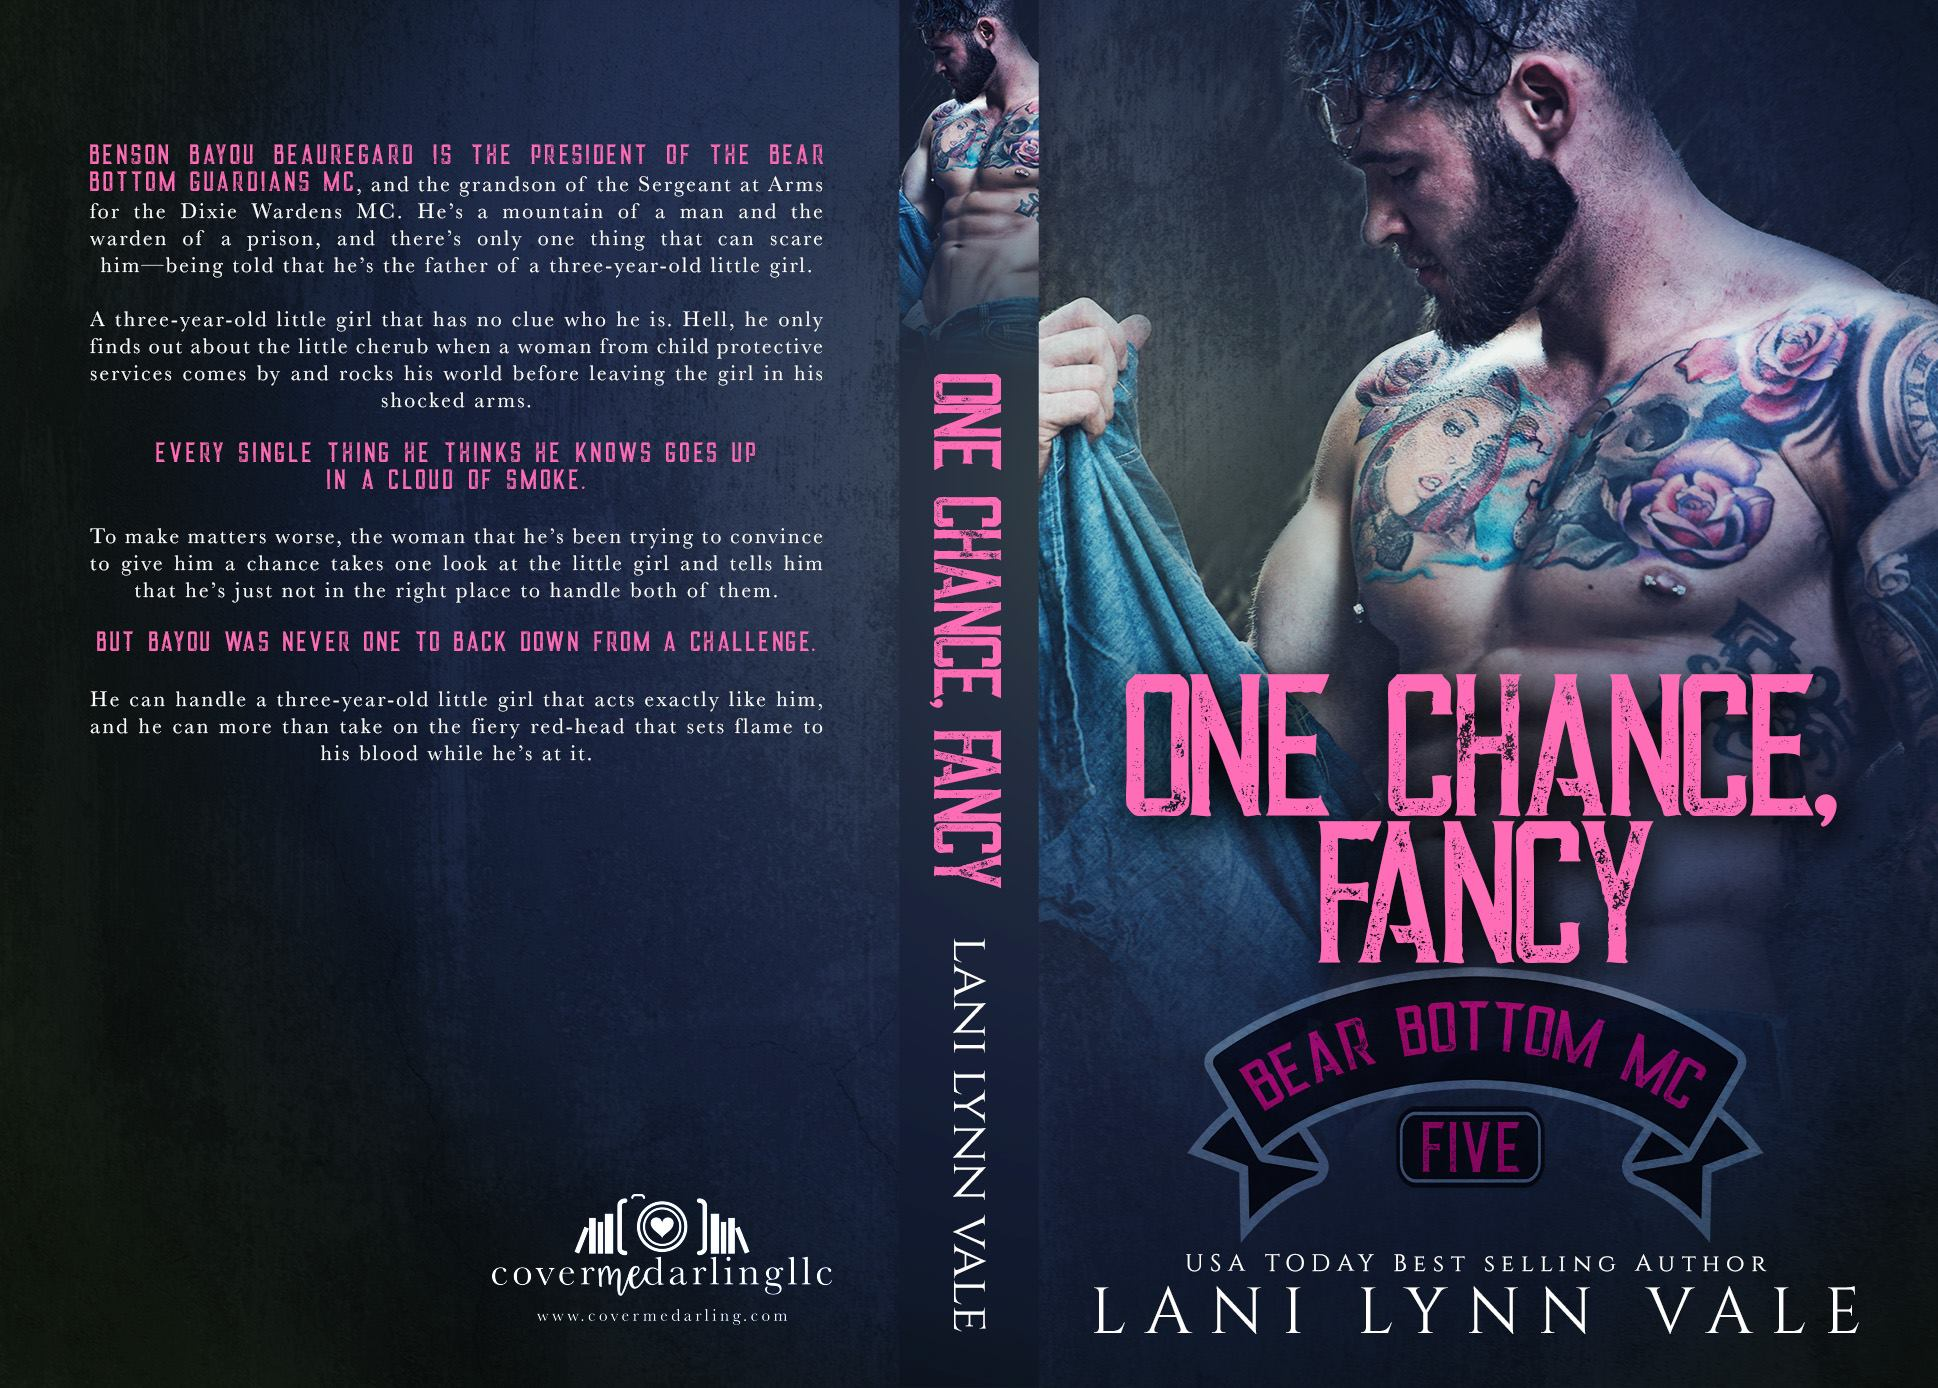 One Chance, Fancy Coverflat Design